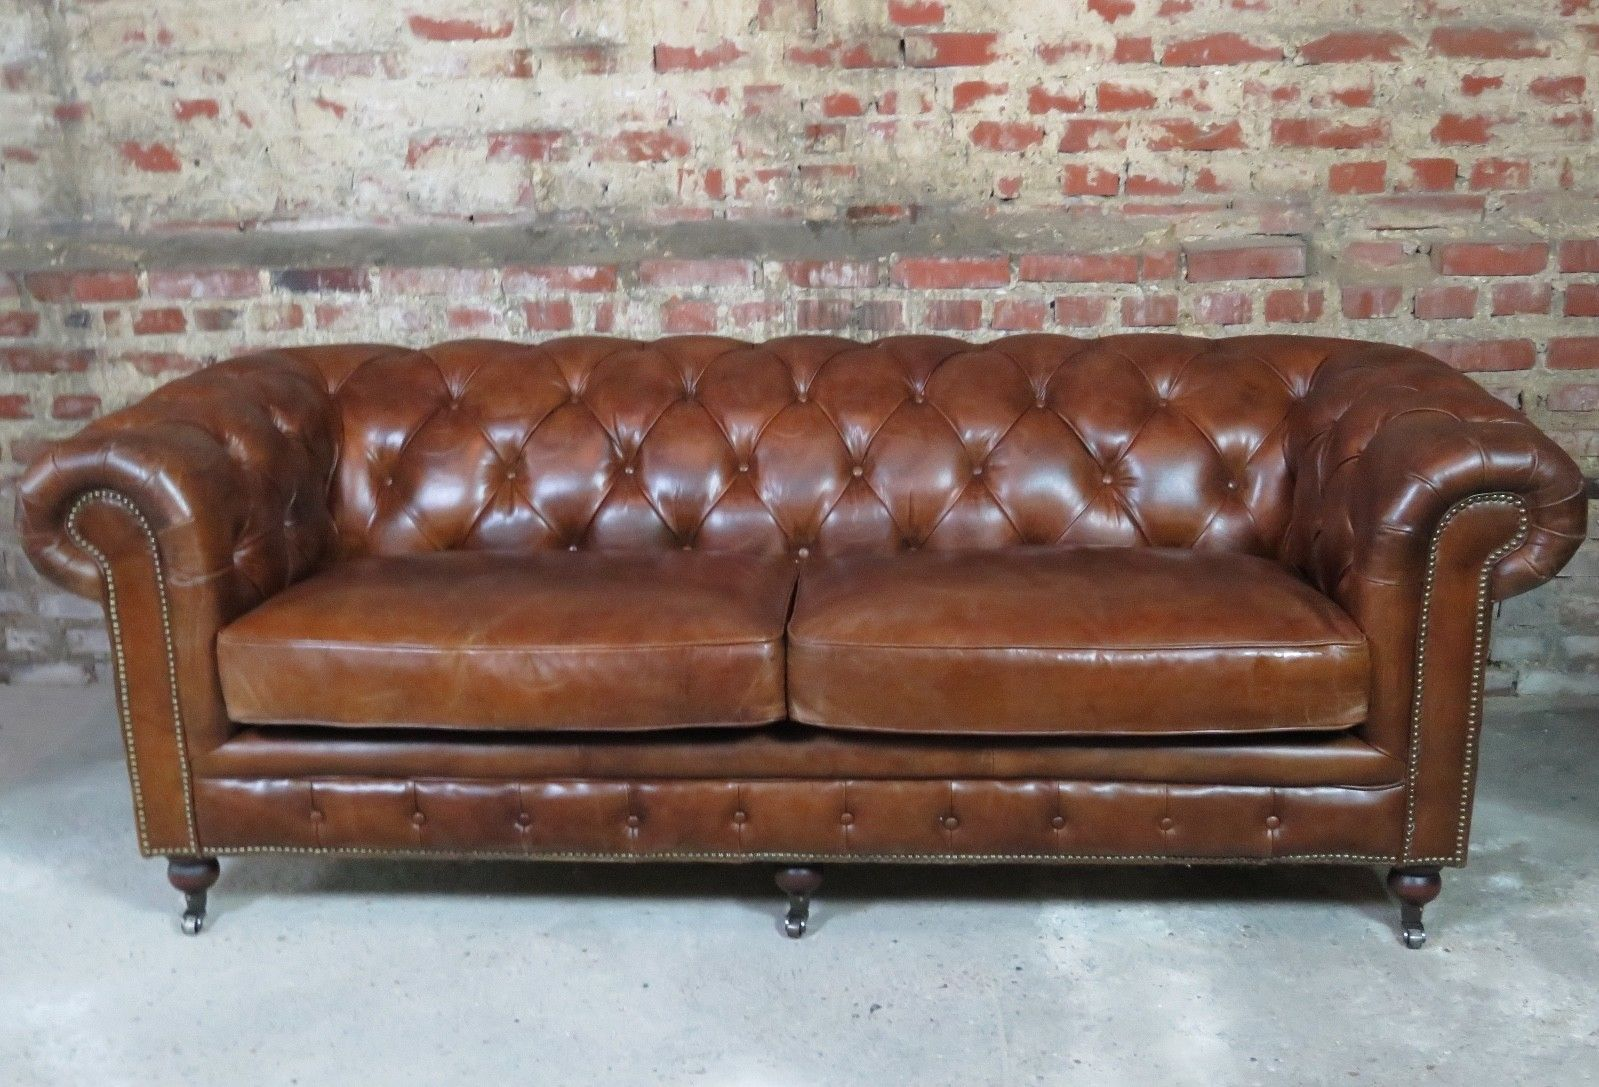 Canape Chesterfield 3 Places En Cuir Ebay Canape Chesterfield Canape En Cuir Mobilier De Salon